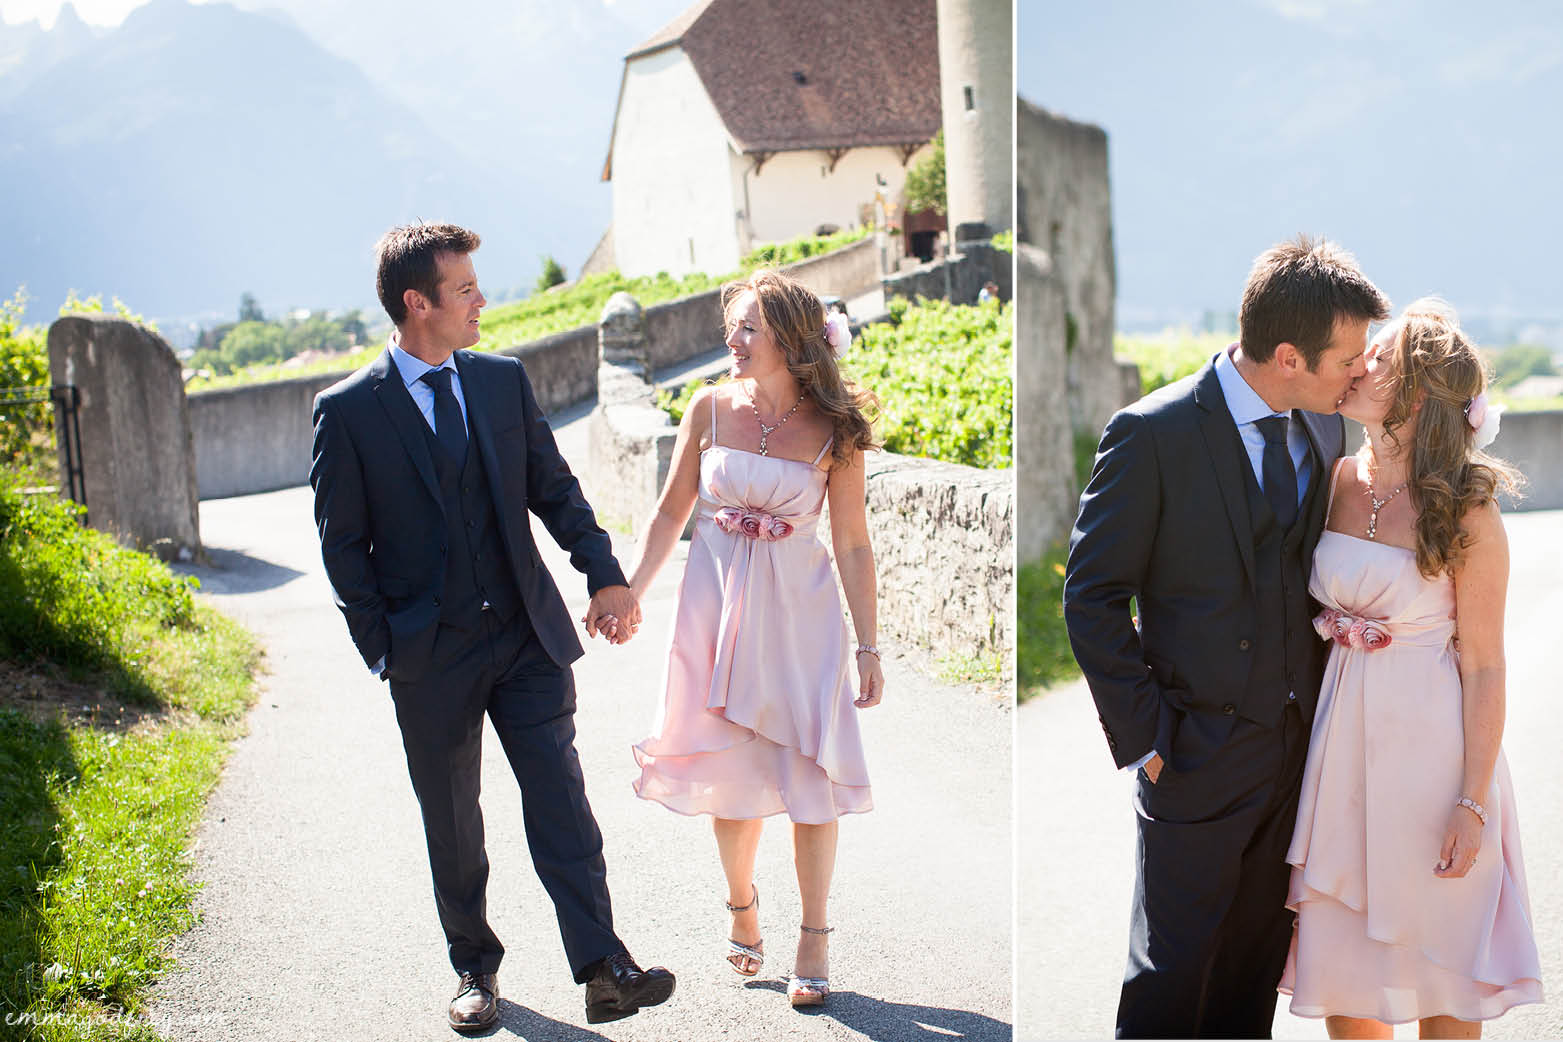 Civil-Wedding-Aigle-Scott4.jpg